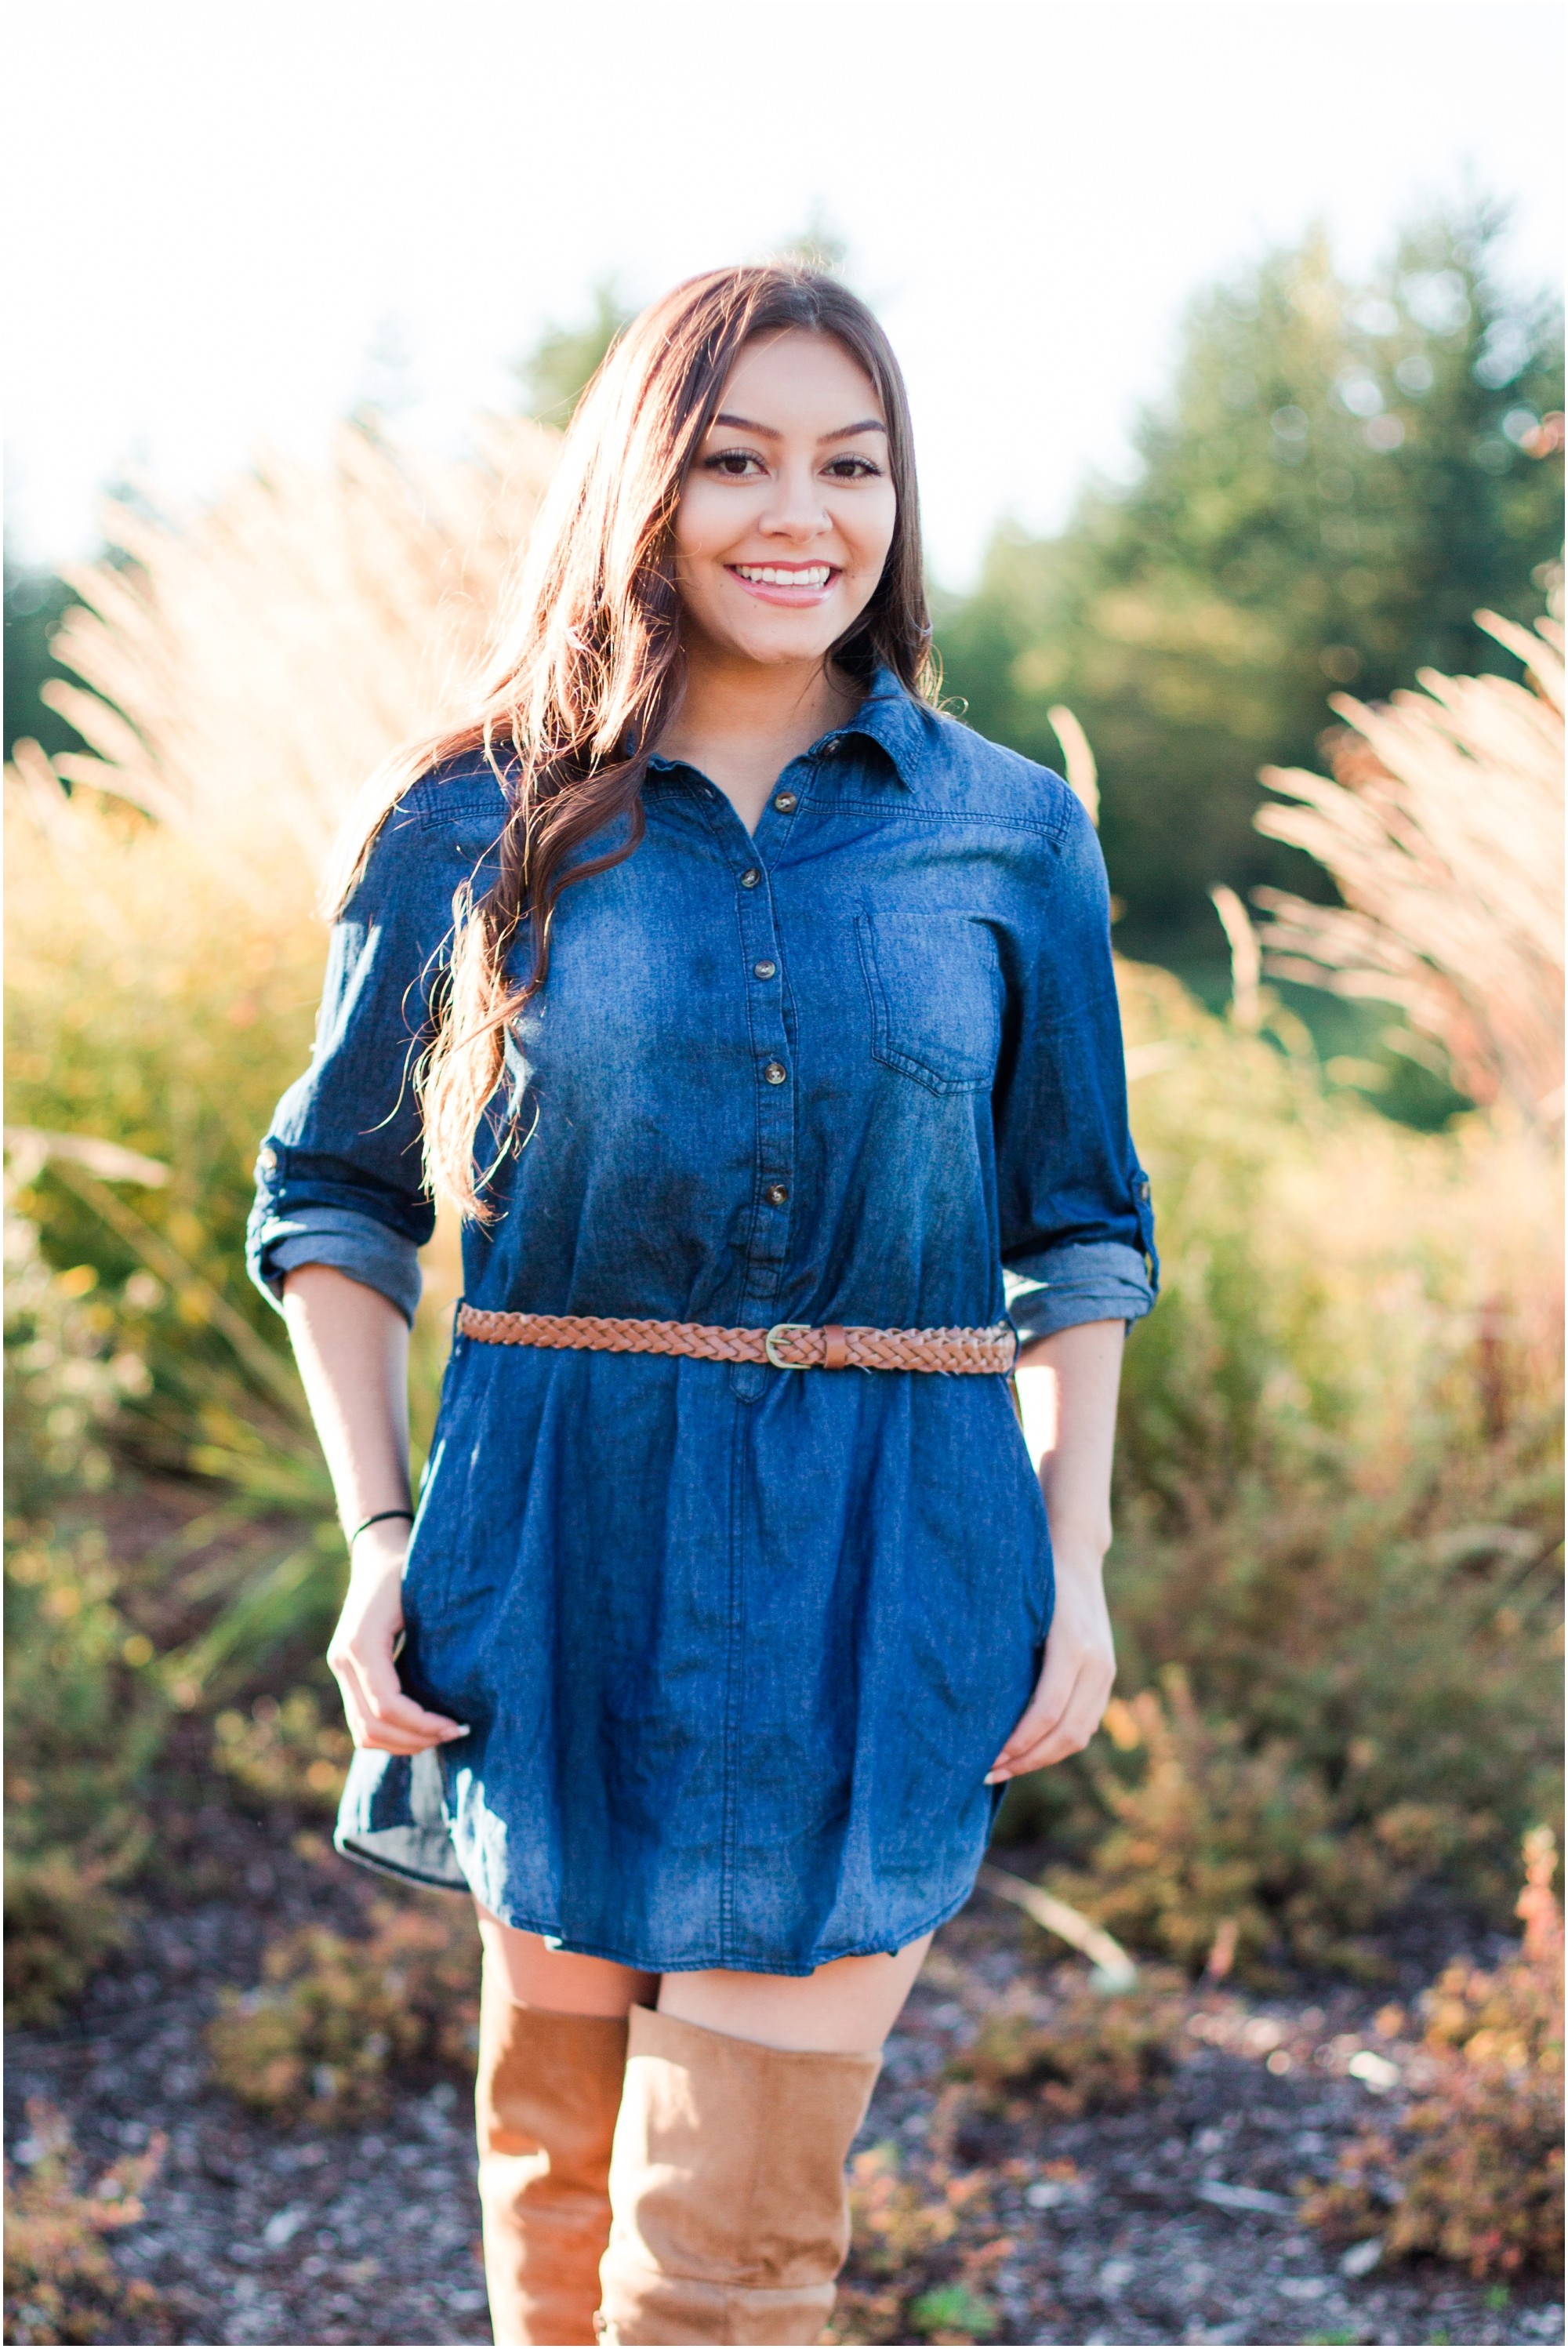 High School Senior portriats by Briana Calderon Photography based in the Greater Seattle & Tacoma, WA_0946.jpg